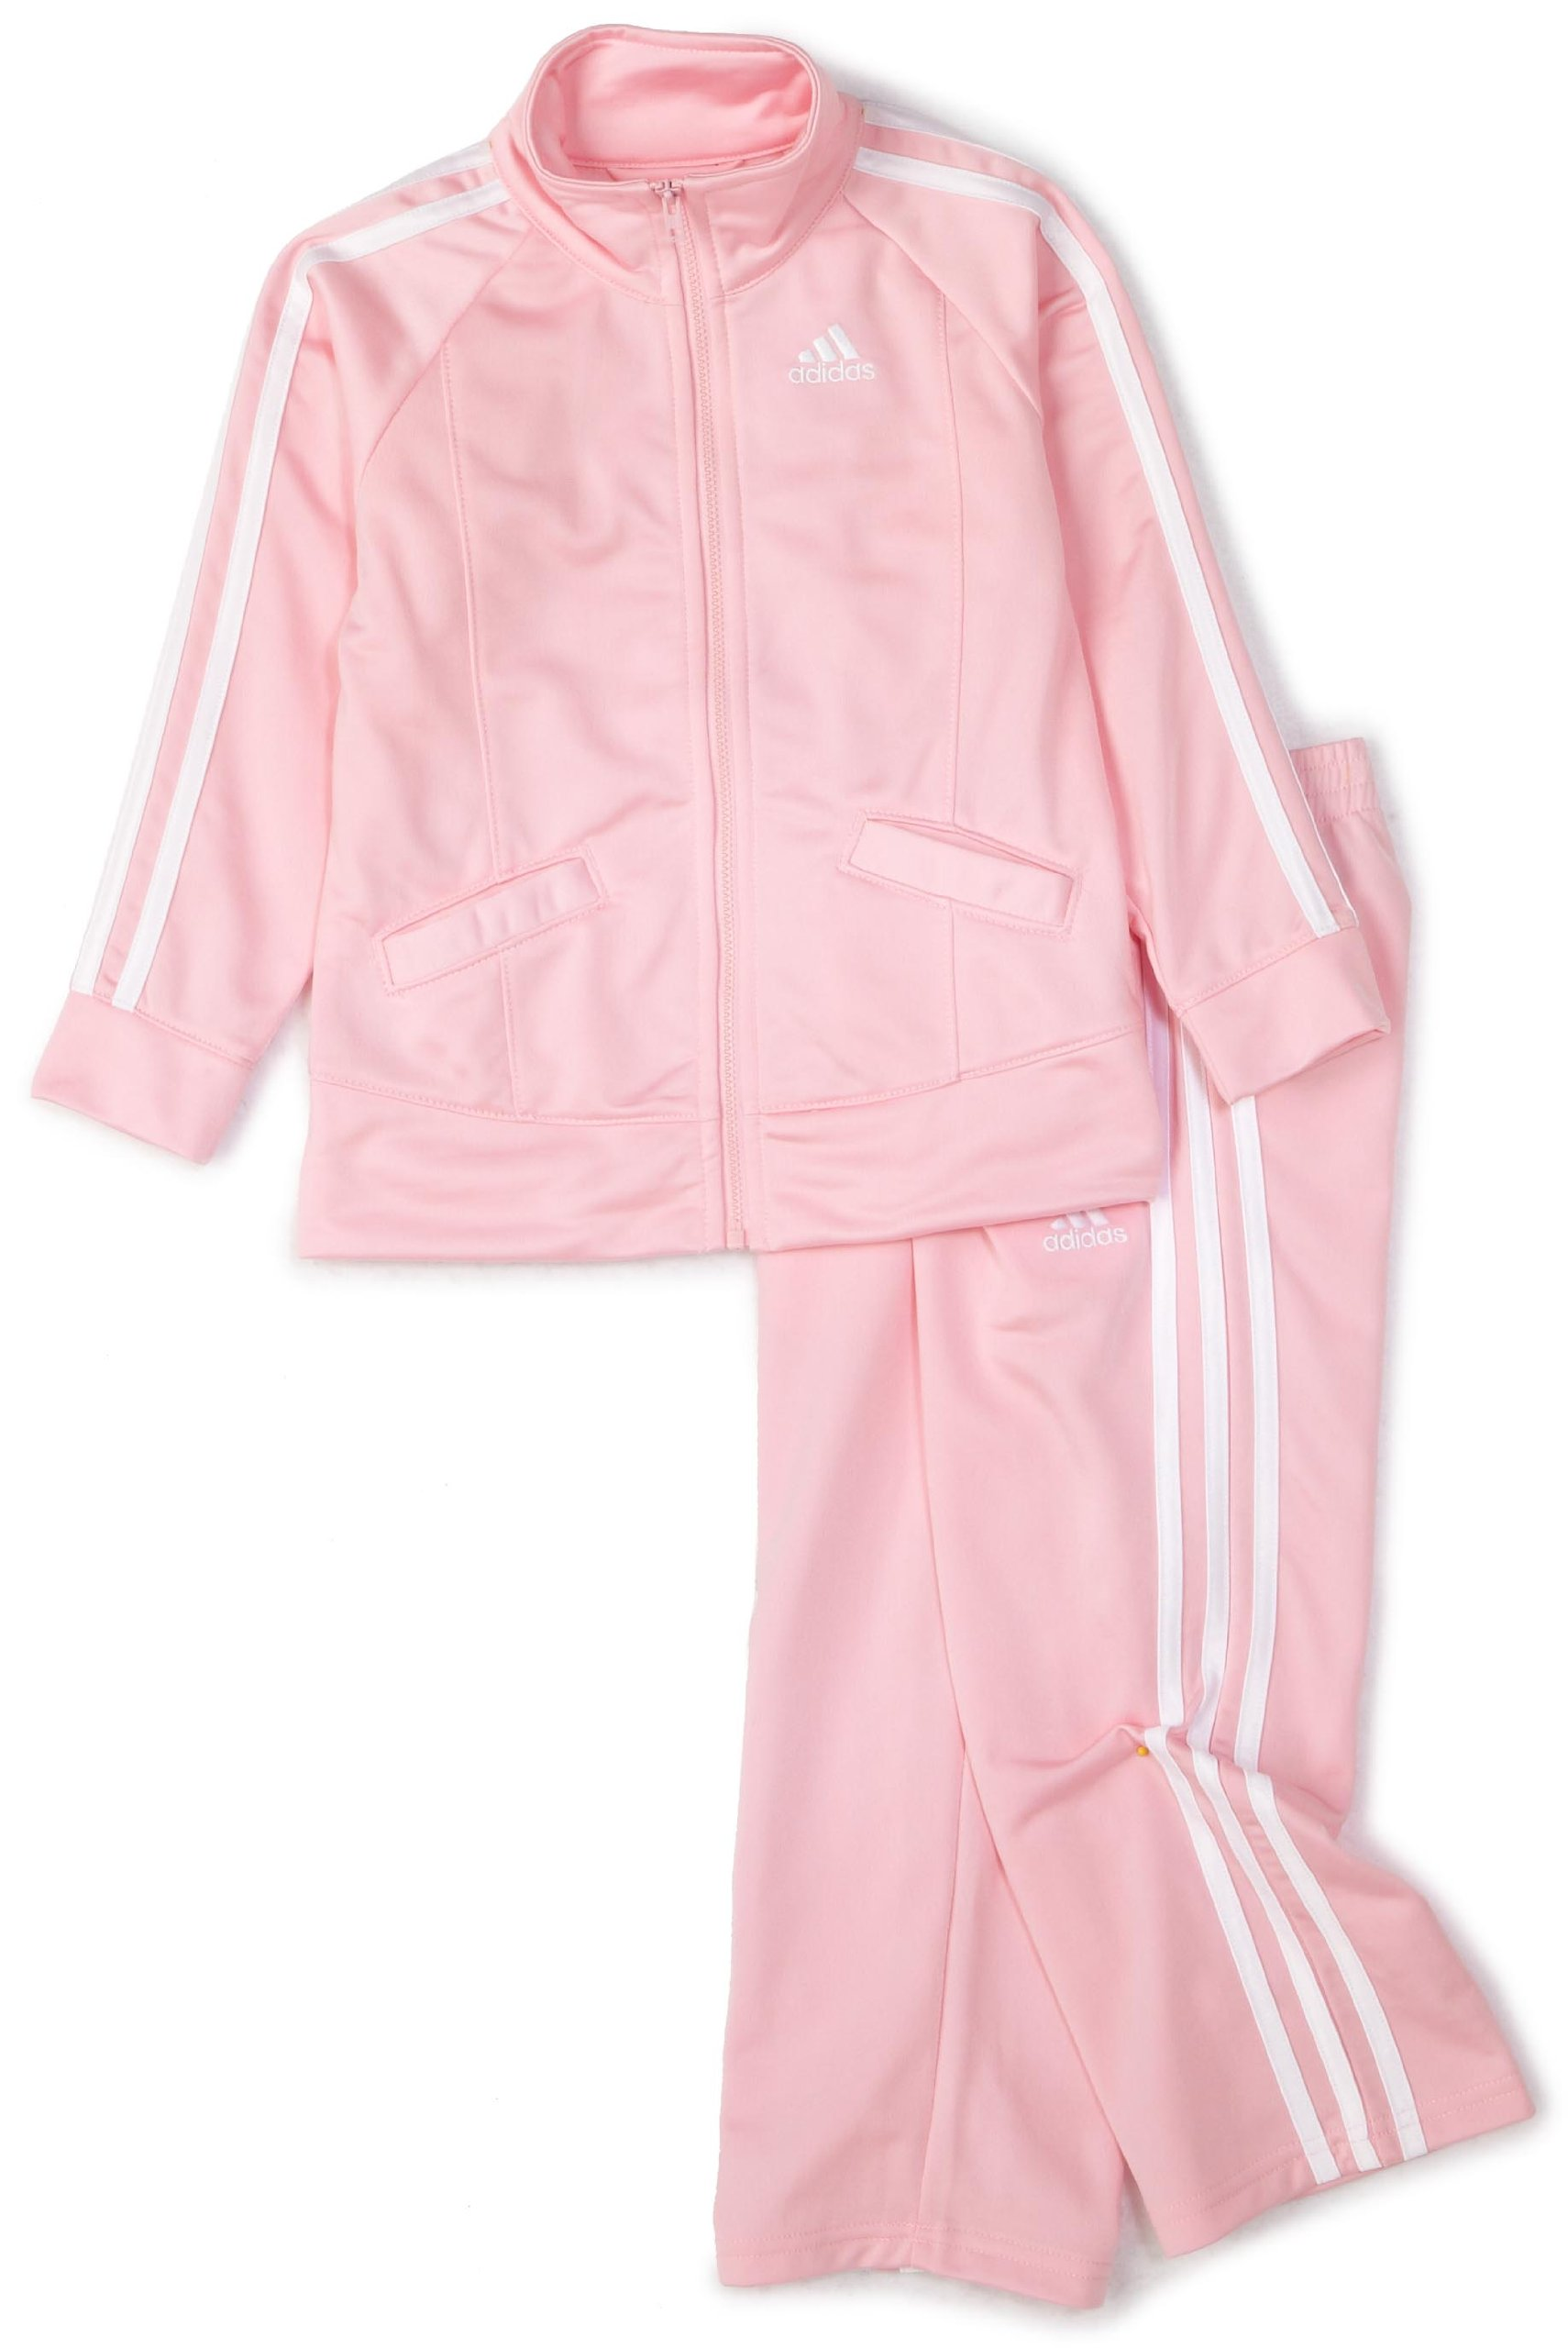 adidas Baby Girls' Tricot Zip Jacket and Pant Set, Light Pink Basic, 24 Months